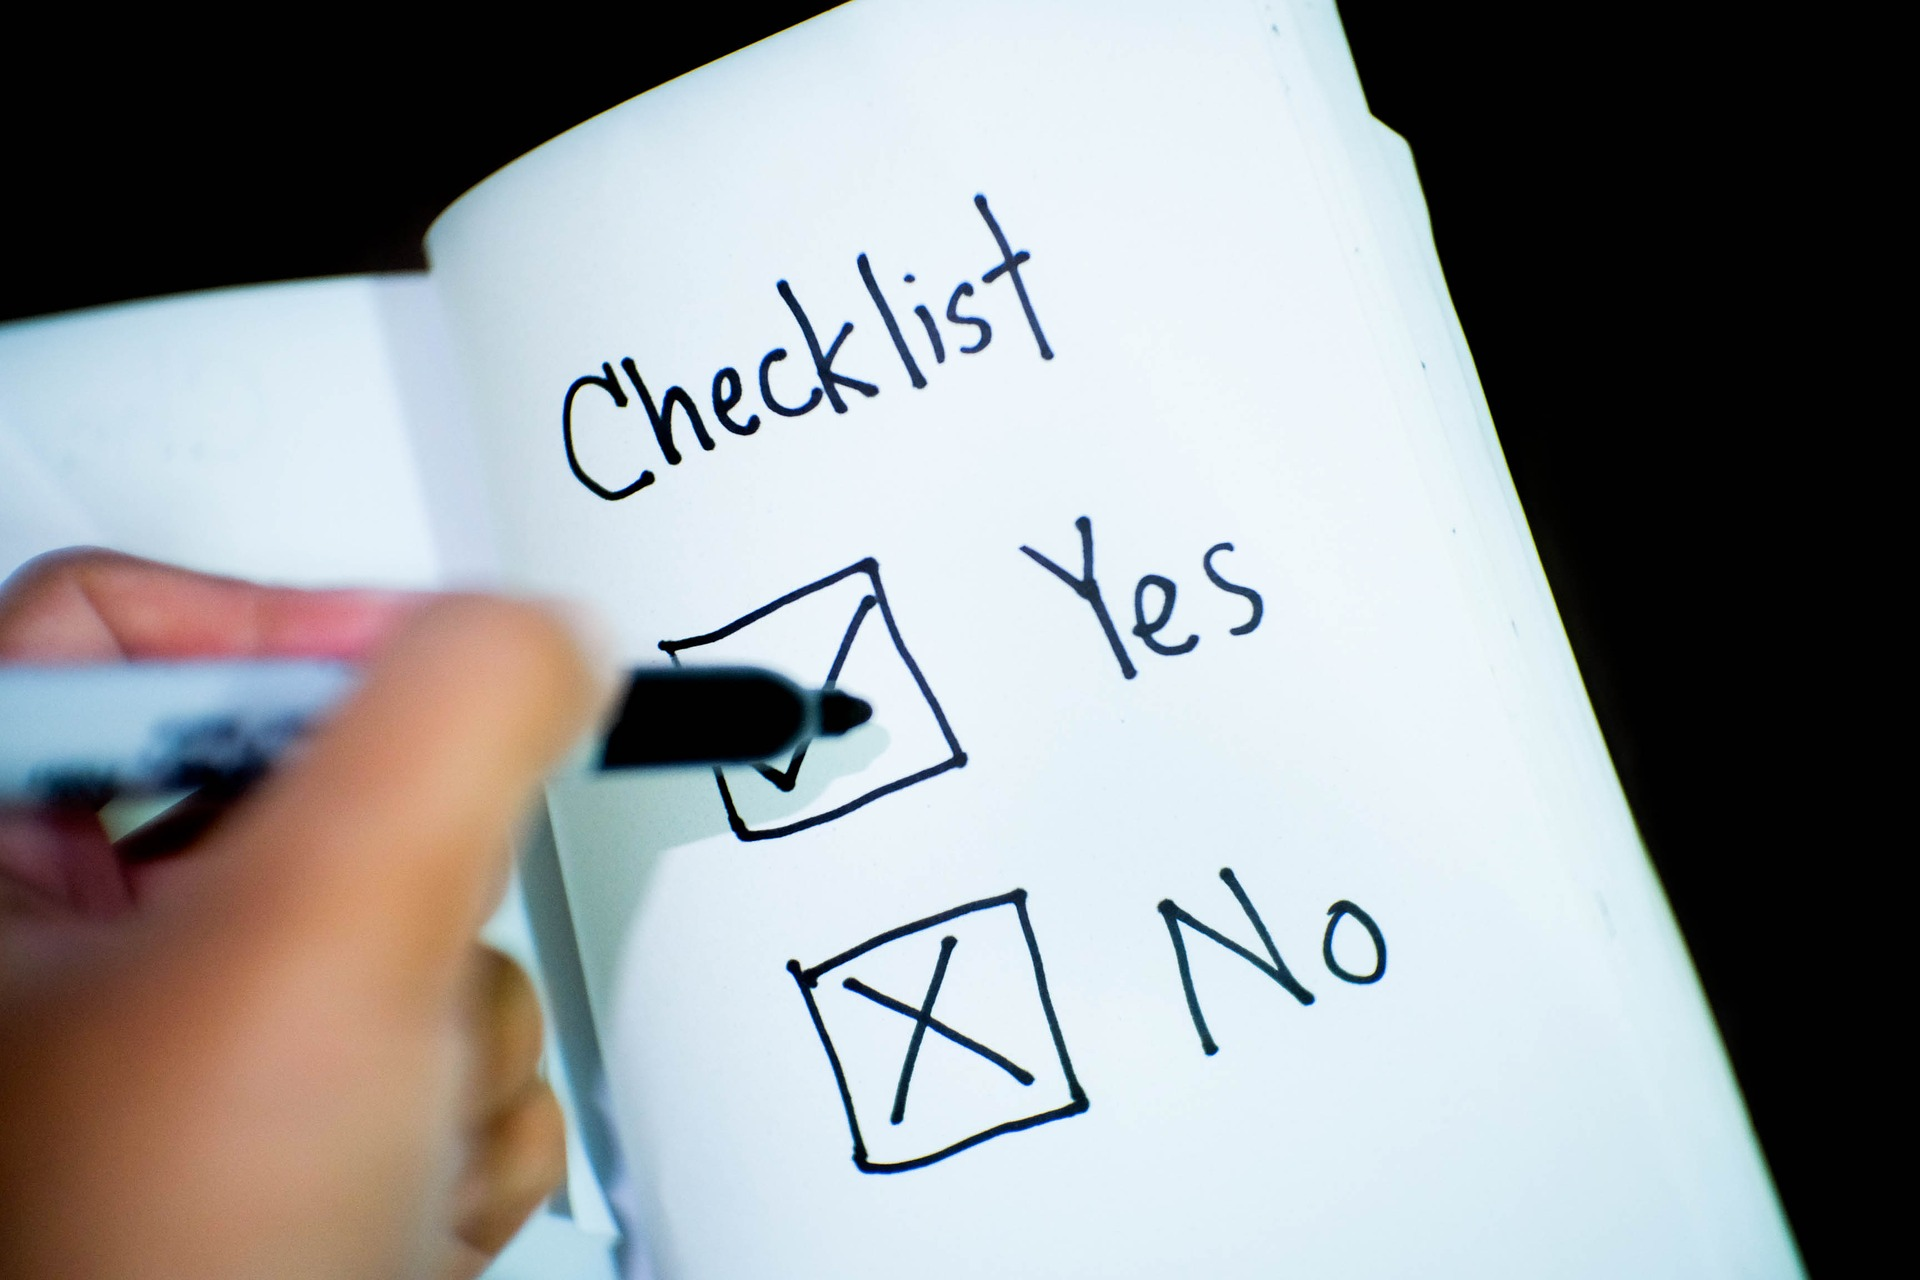 Checkliste: Yes und No